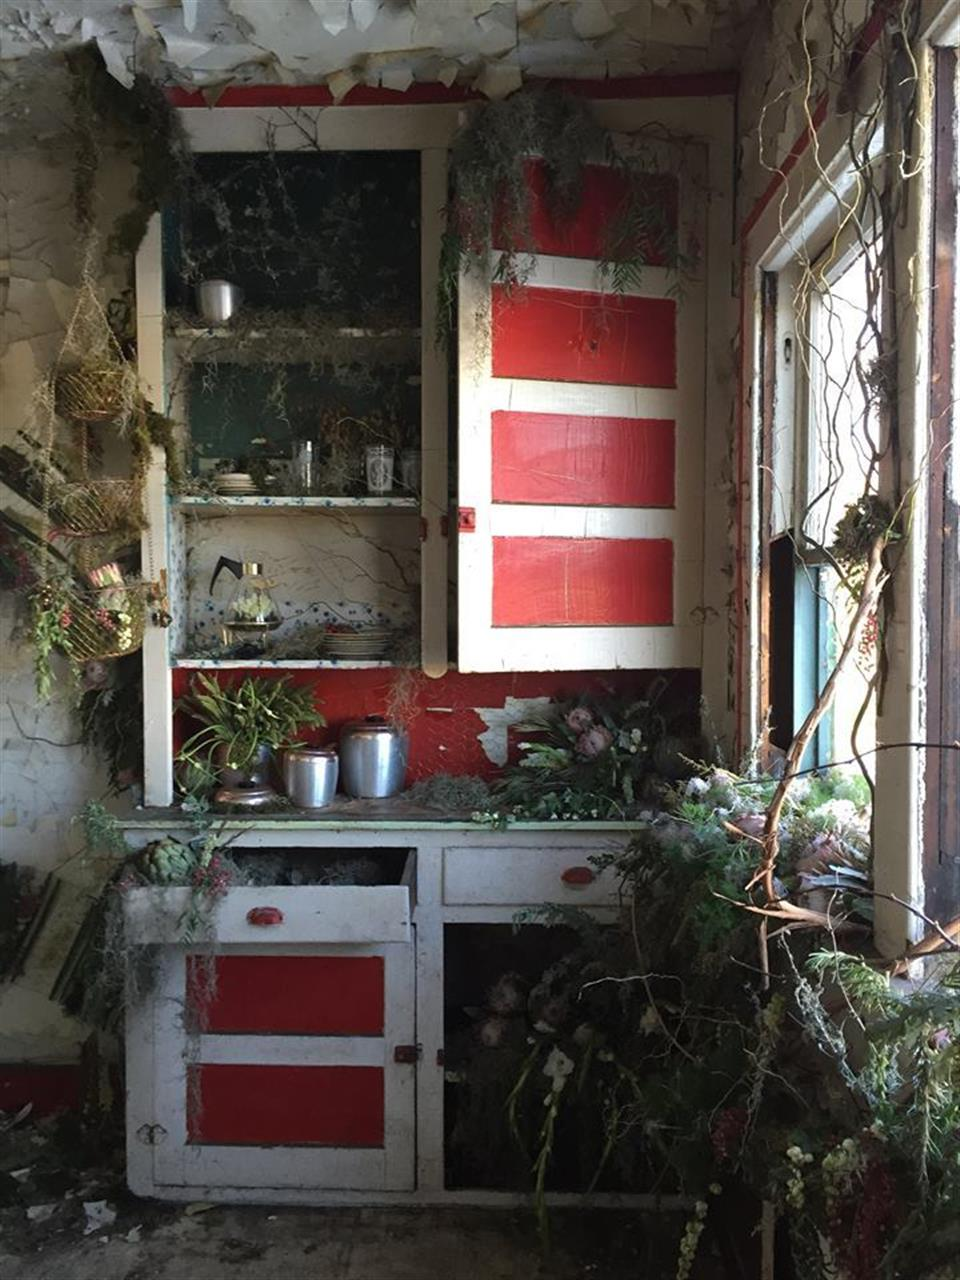 Flower House ~ a weekend-long art installation in October 2015 when florists from across the country filled an abandoned house with fresh flowers & living plants #Hamtramck #flowerhouse #Michigan